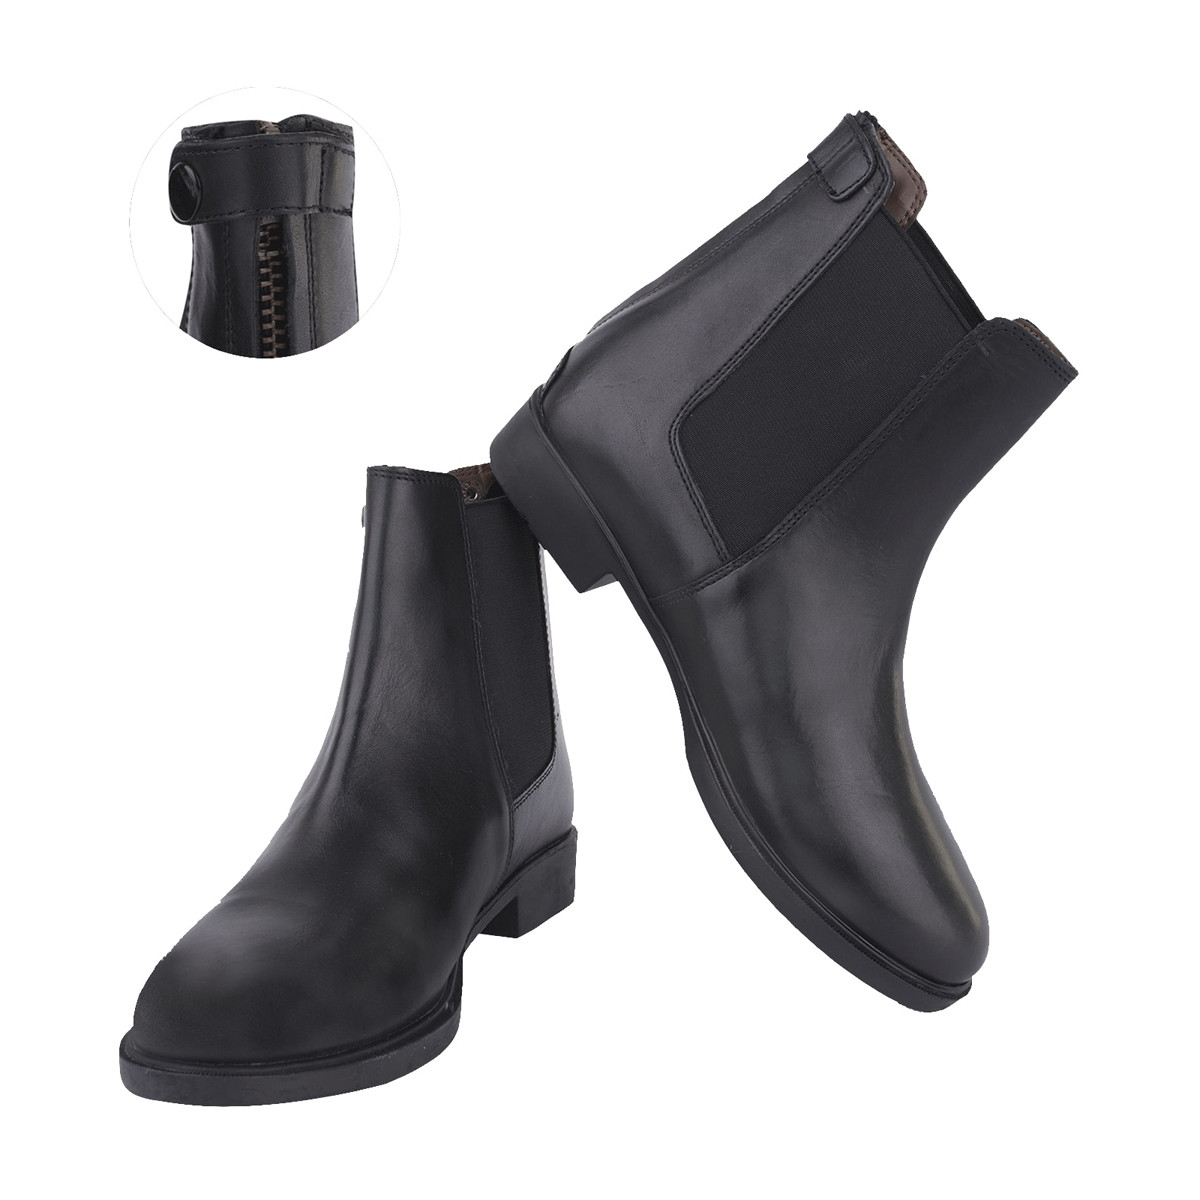 Jodhpur Ankle Boots Tradition